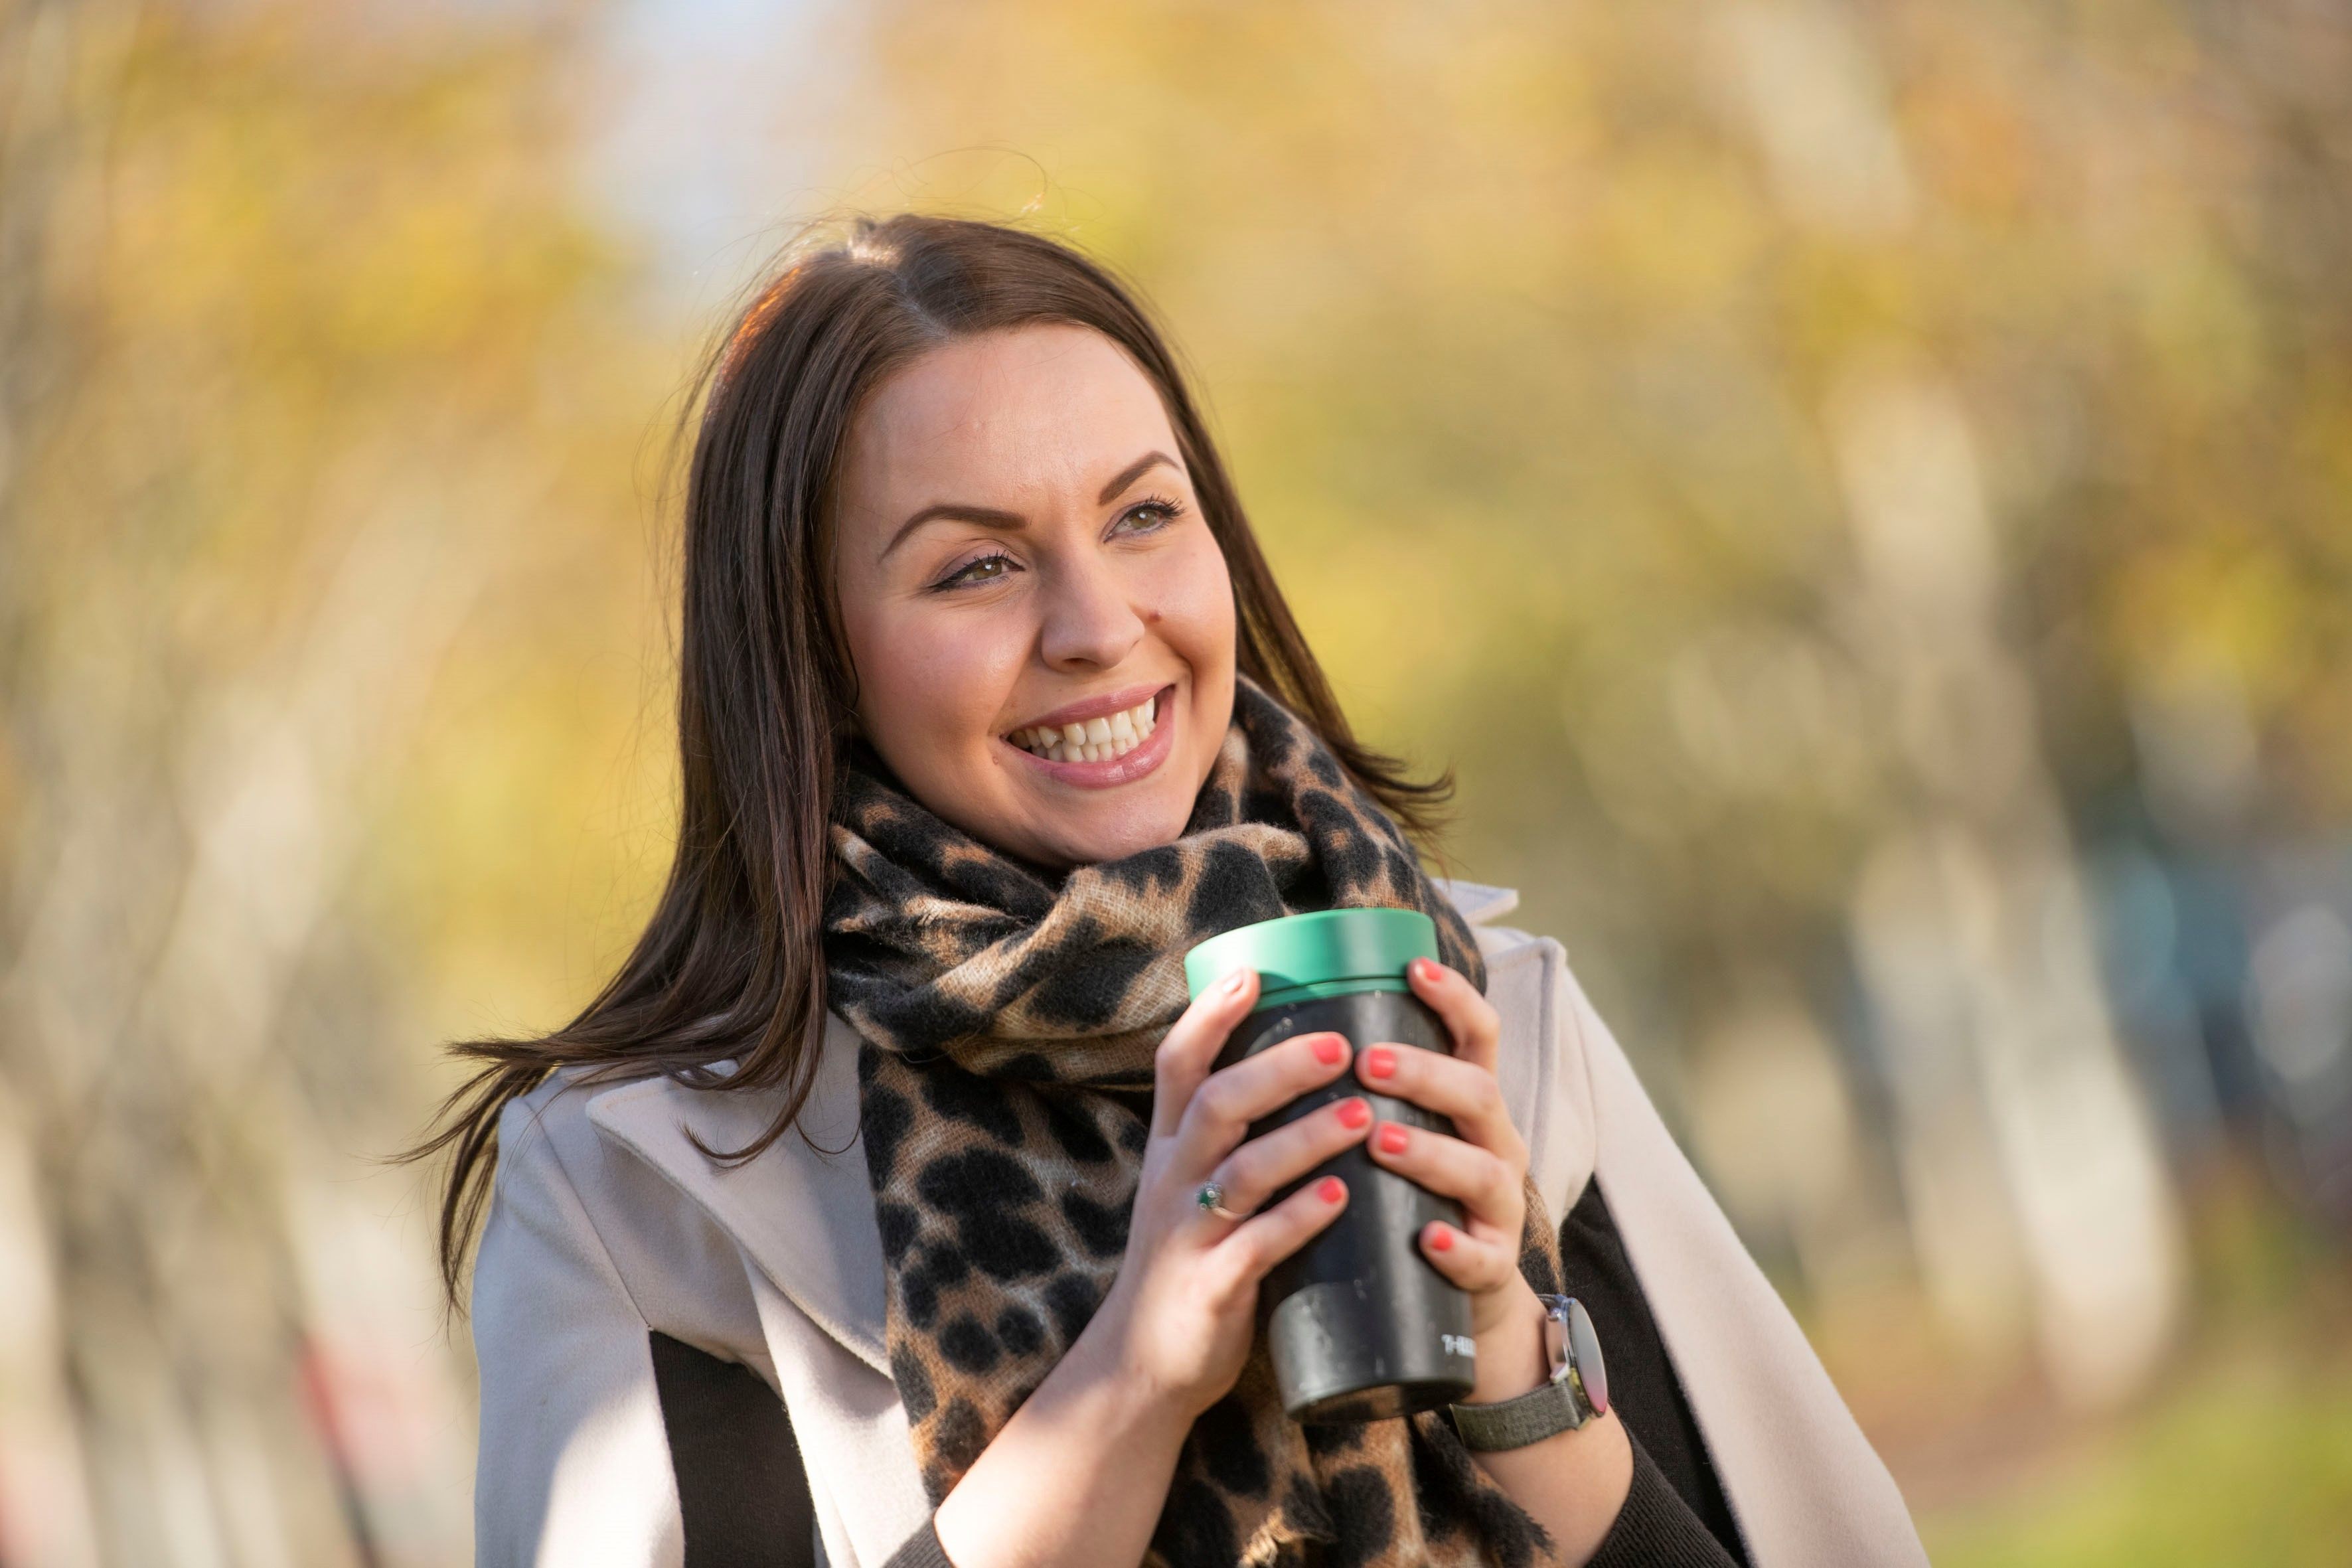 7-Eleven has a free coffee campaign | Inside Franchise Business